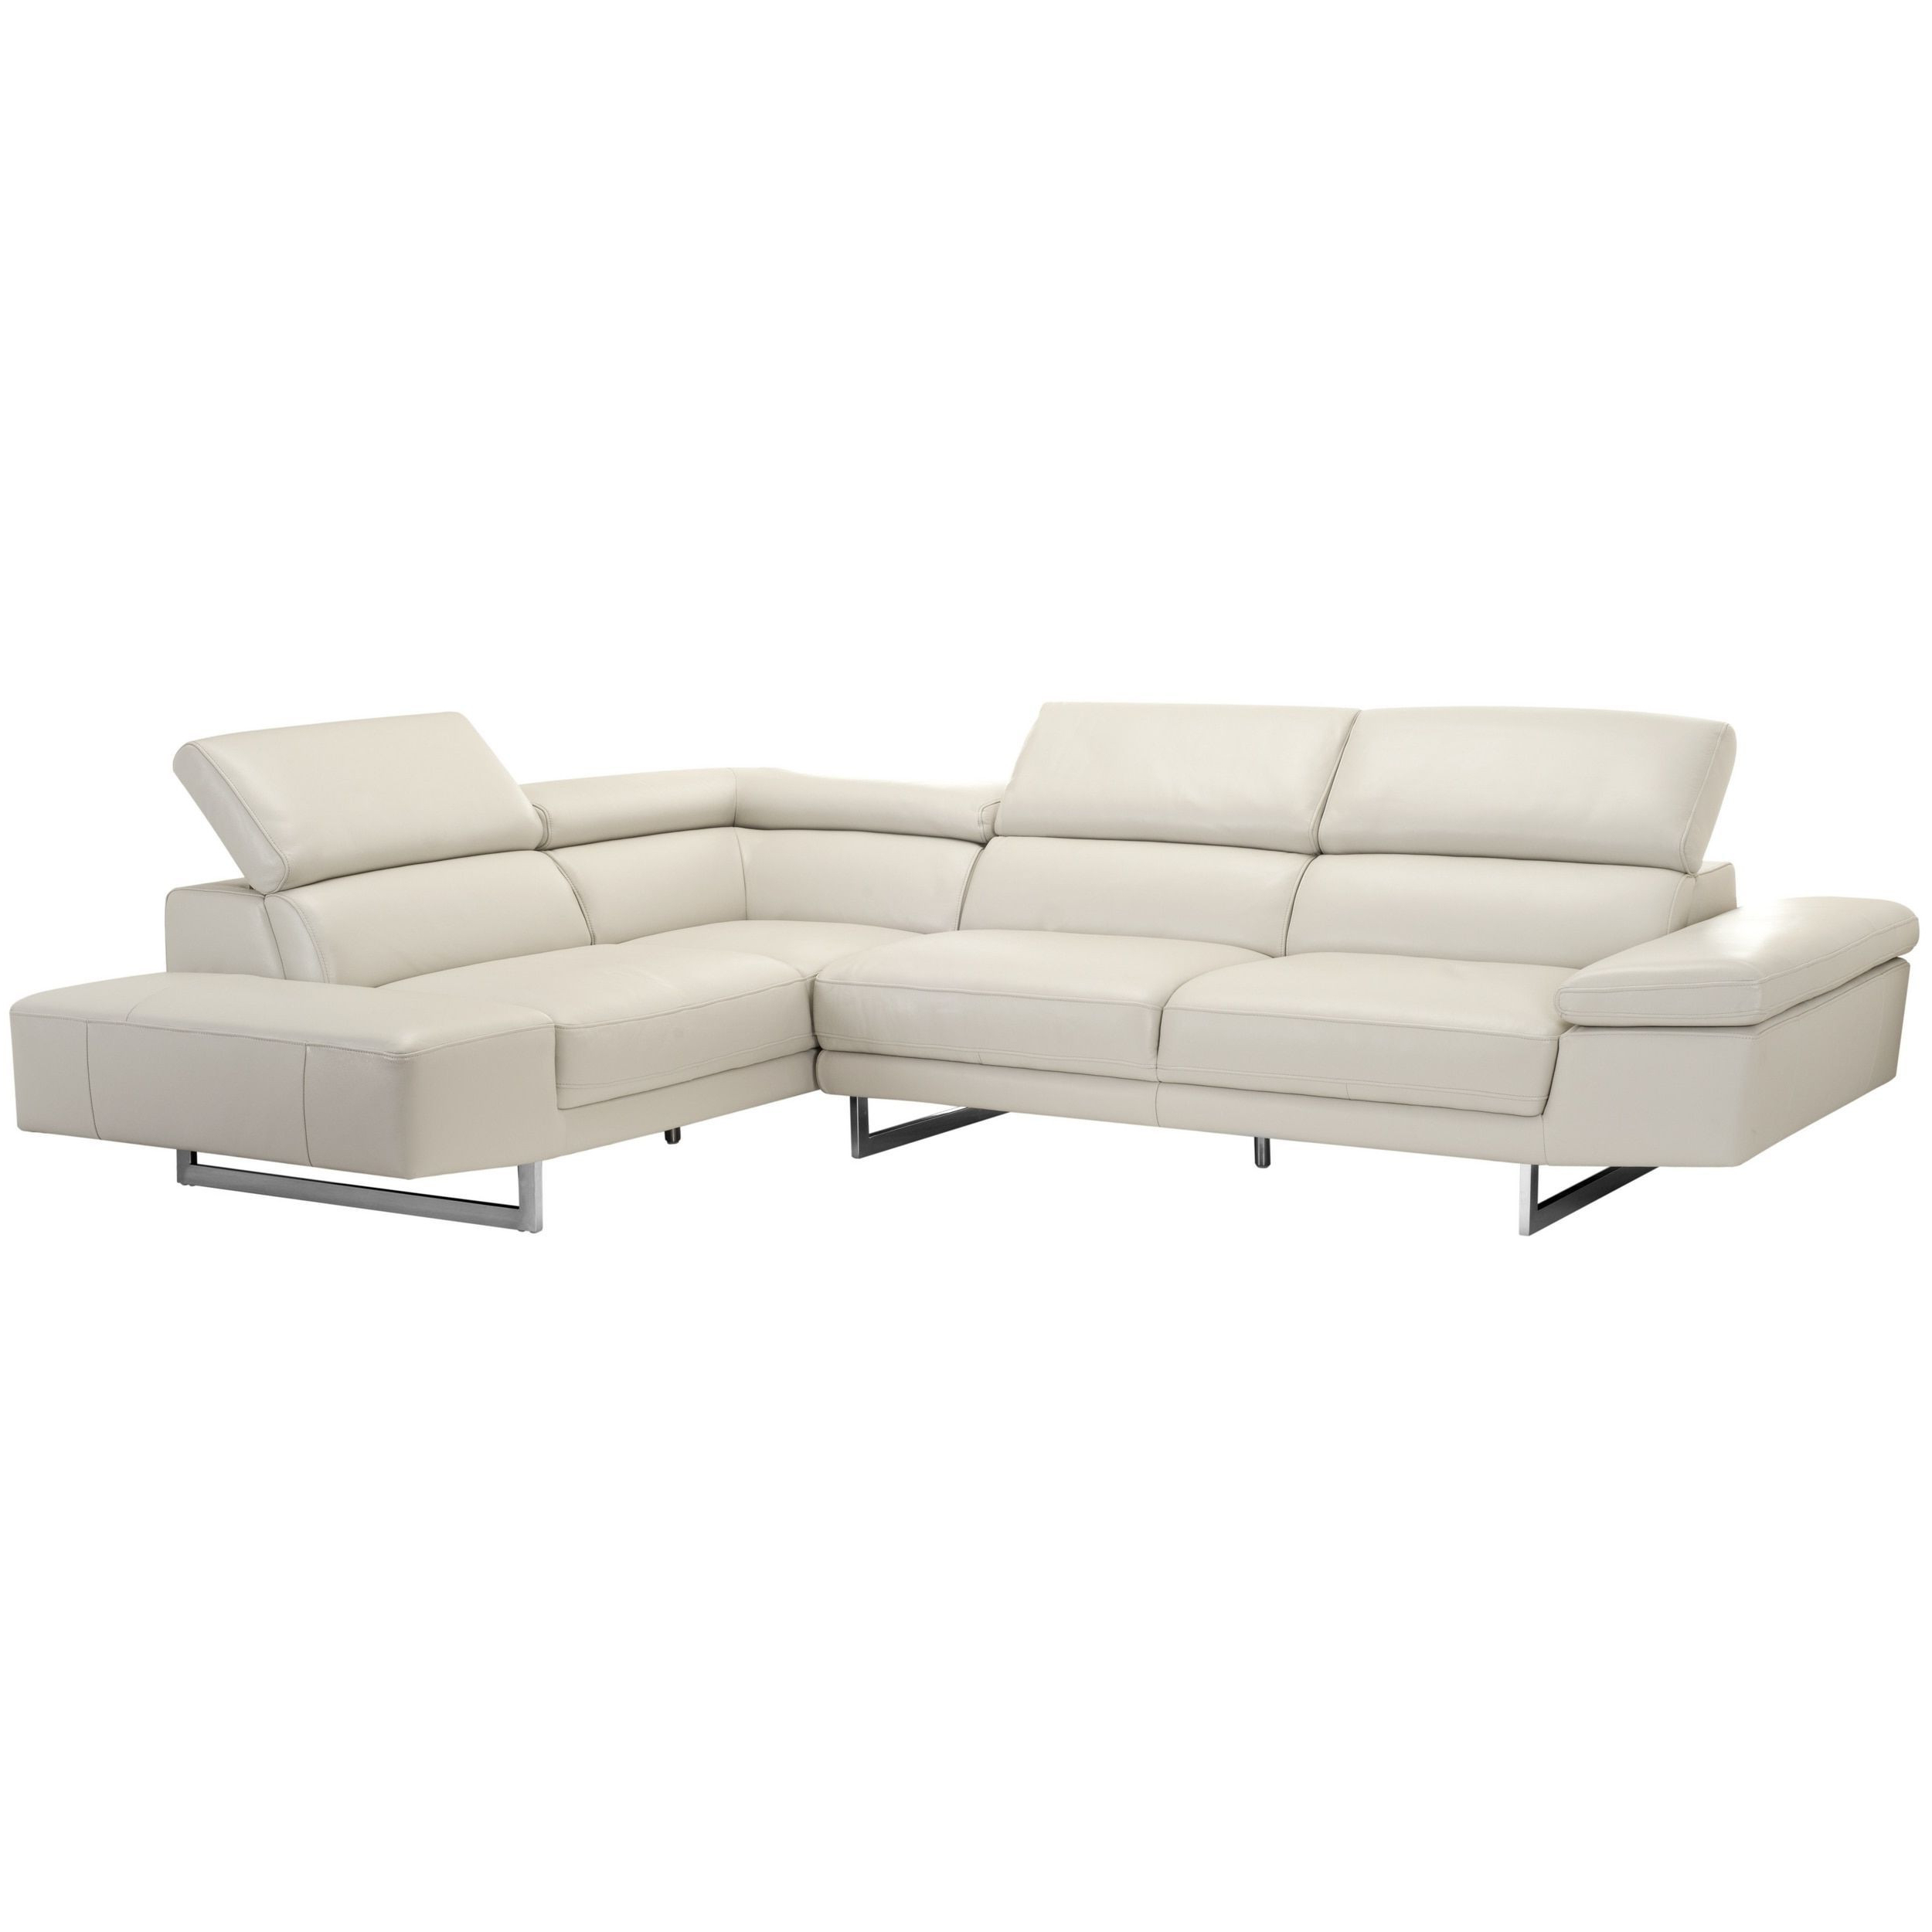 Favorite Las Grande Sofá Chaise Longue Concepto Para Morada – Cuartoz Within Egan Ii Cement Sofa Sectionals With Reversible Chaise (Gallery 10 of 20)